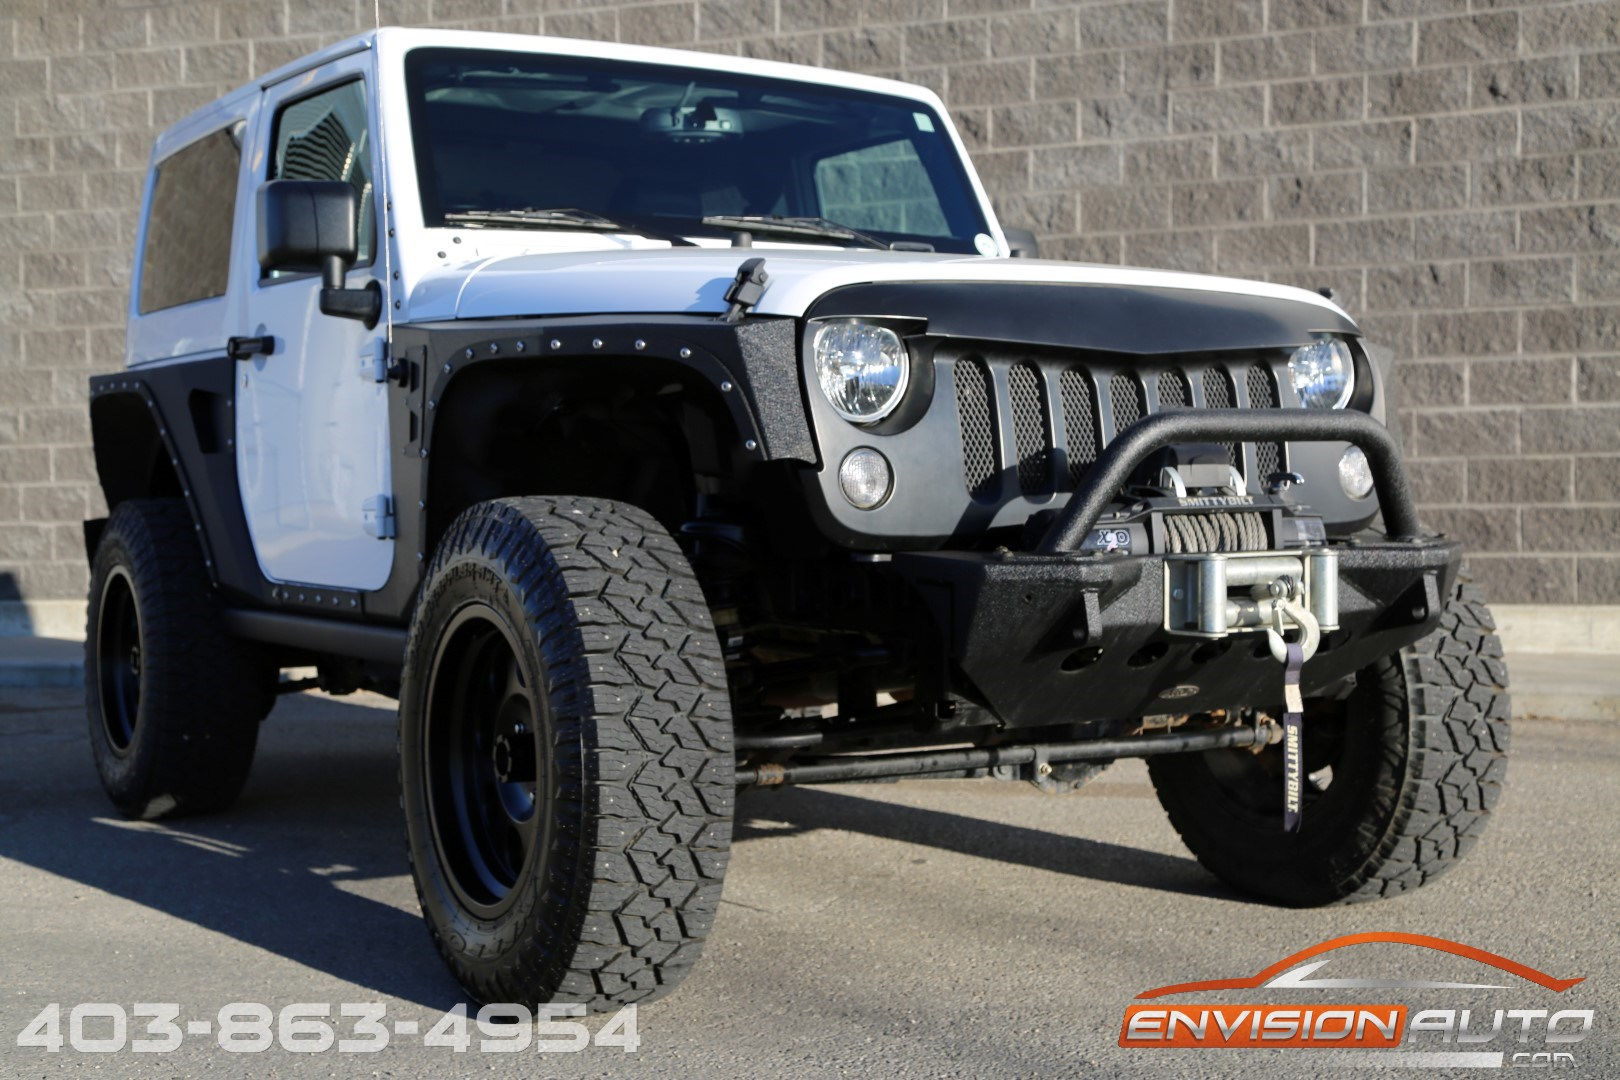 2015 jeep wrangler rubicon lifted custom only 20kms envision auto calgary highline. Black Bedroom Furniture Sets. Home Design Ideas